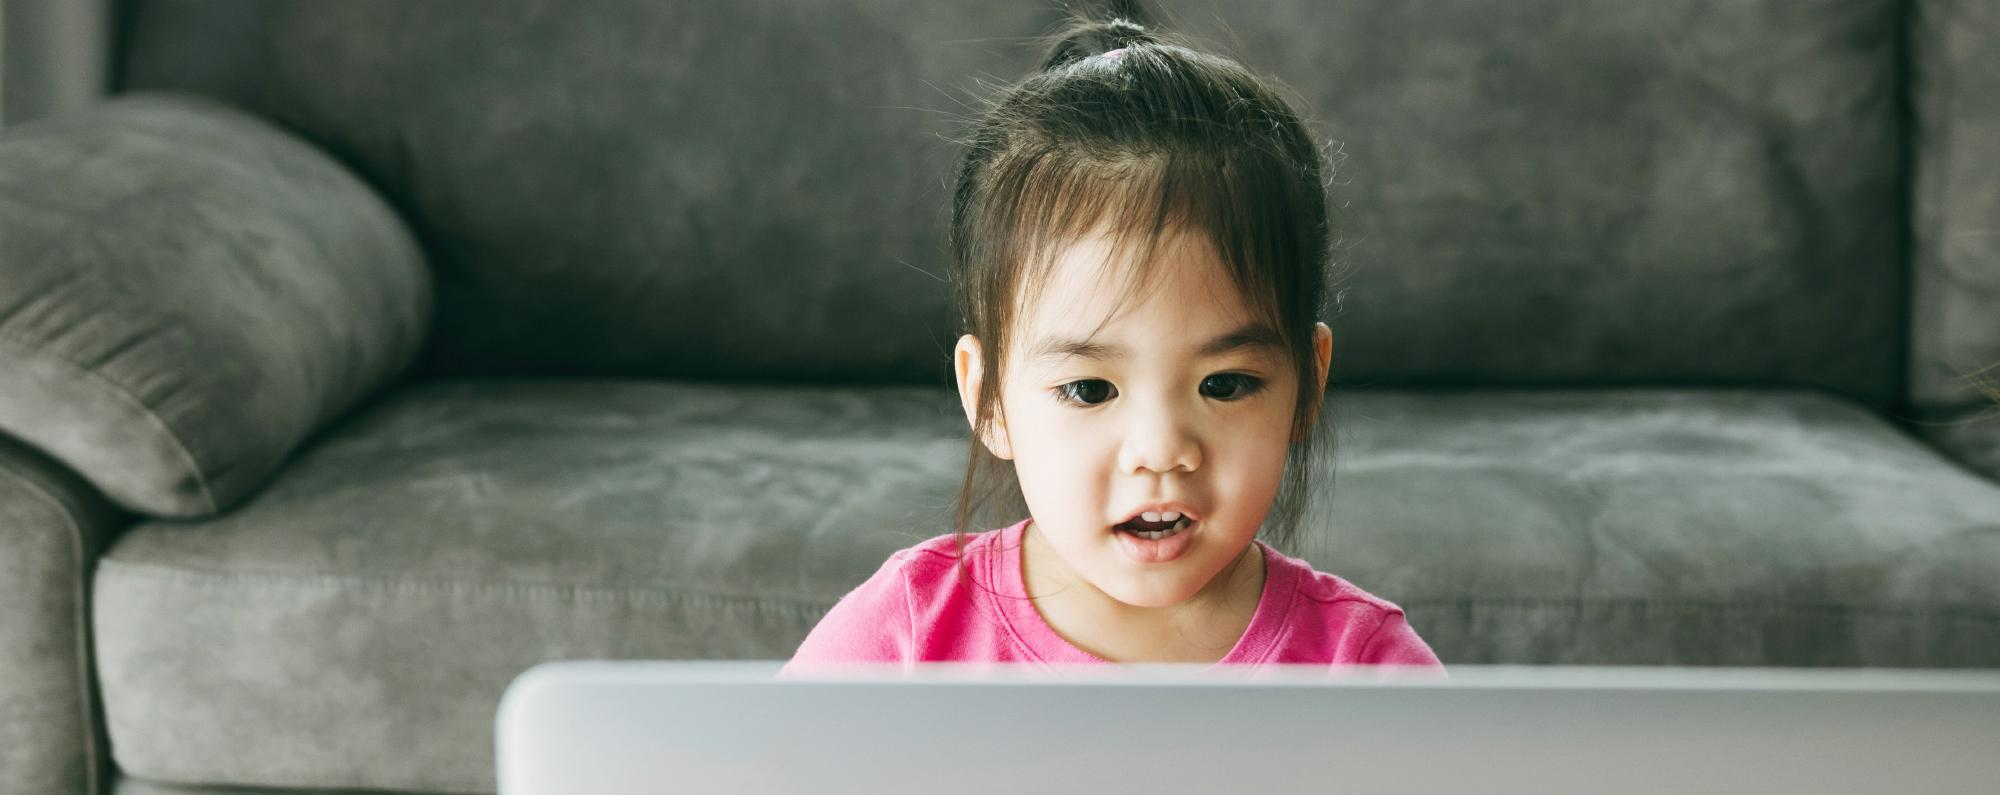 A young girl looking at a laptop